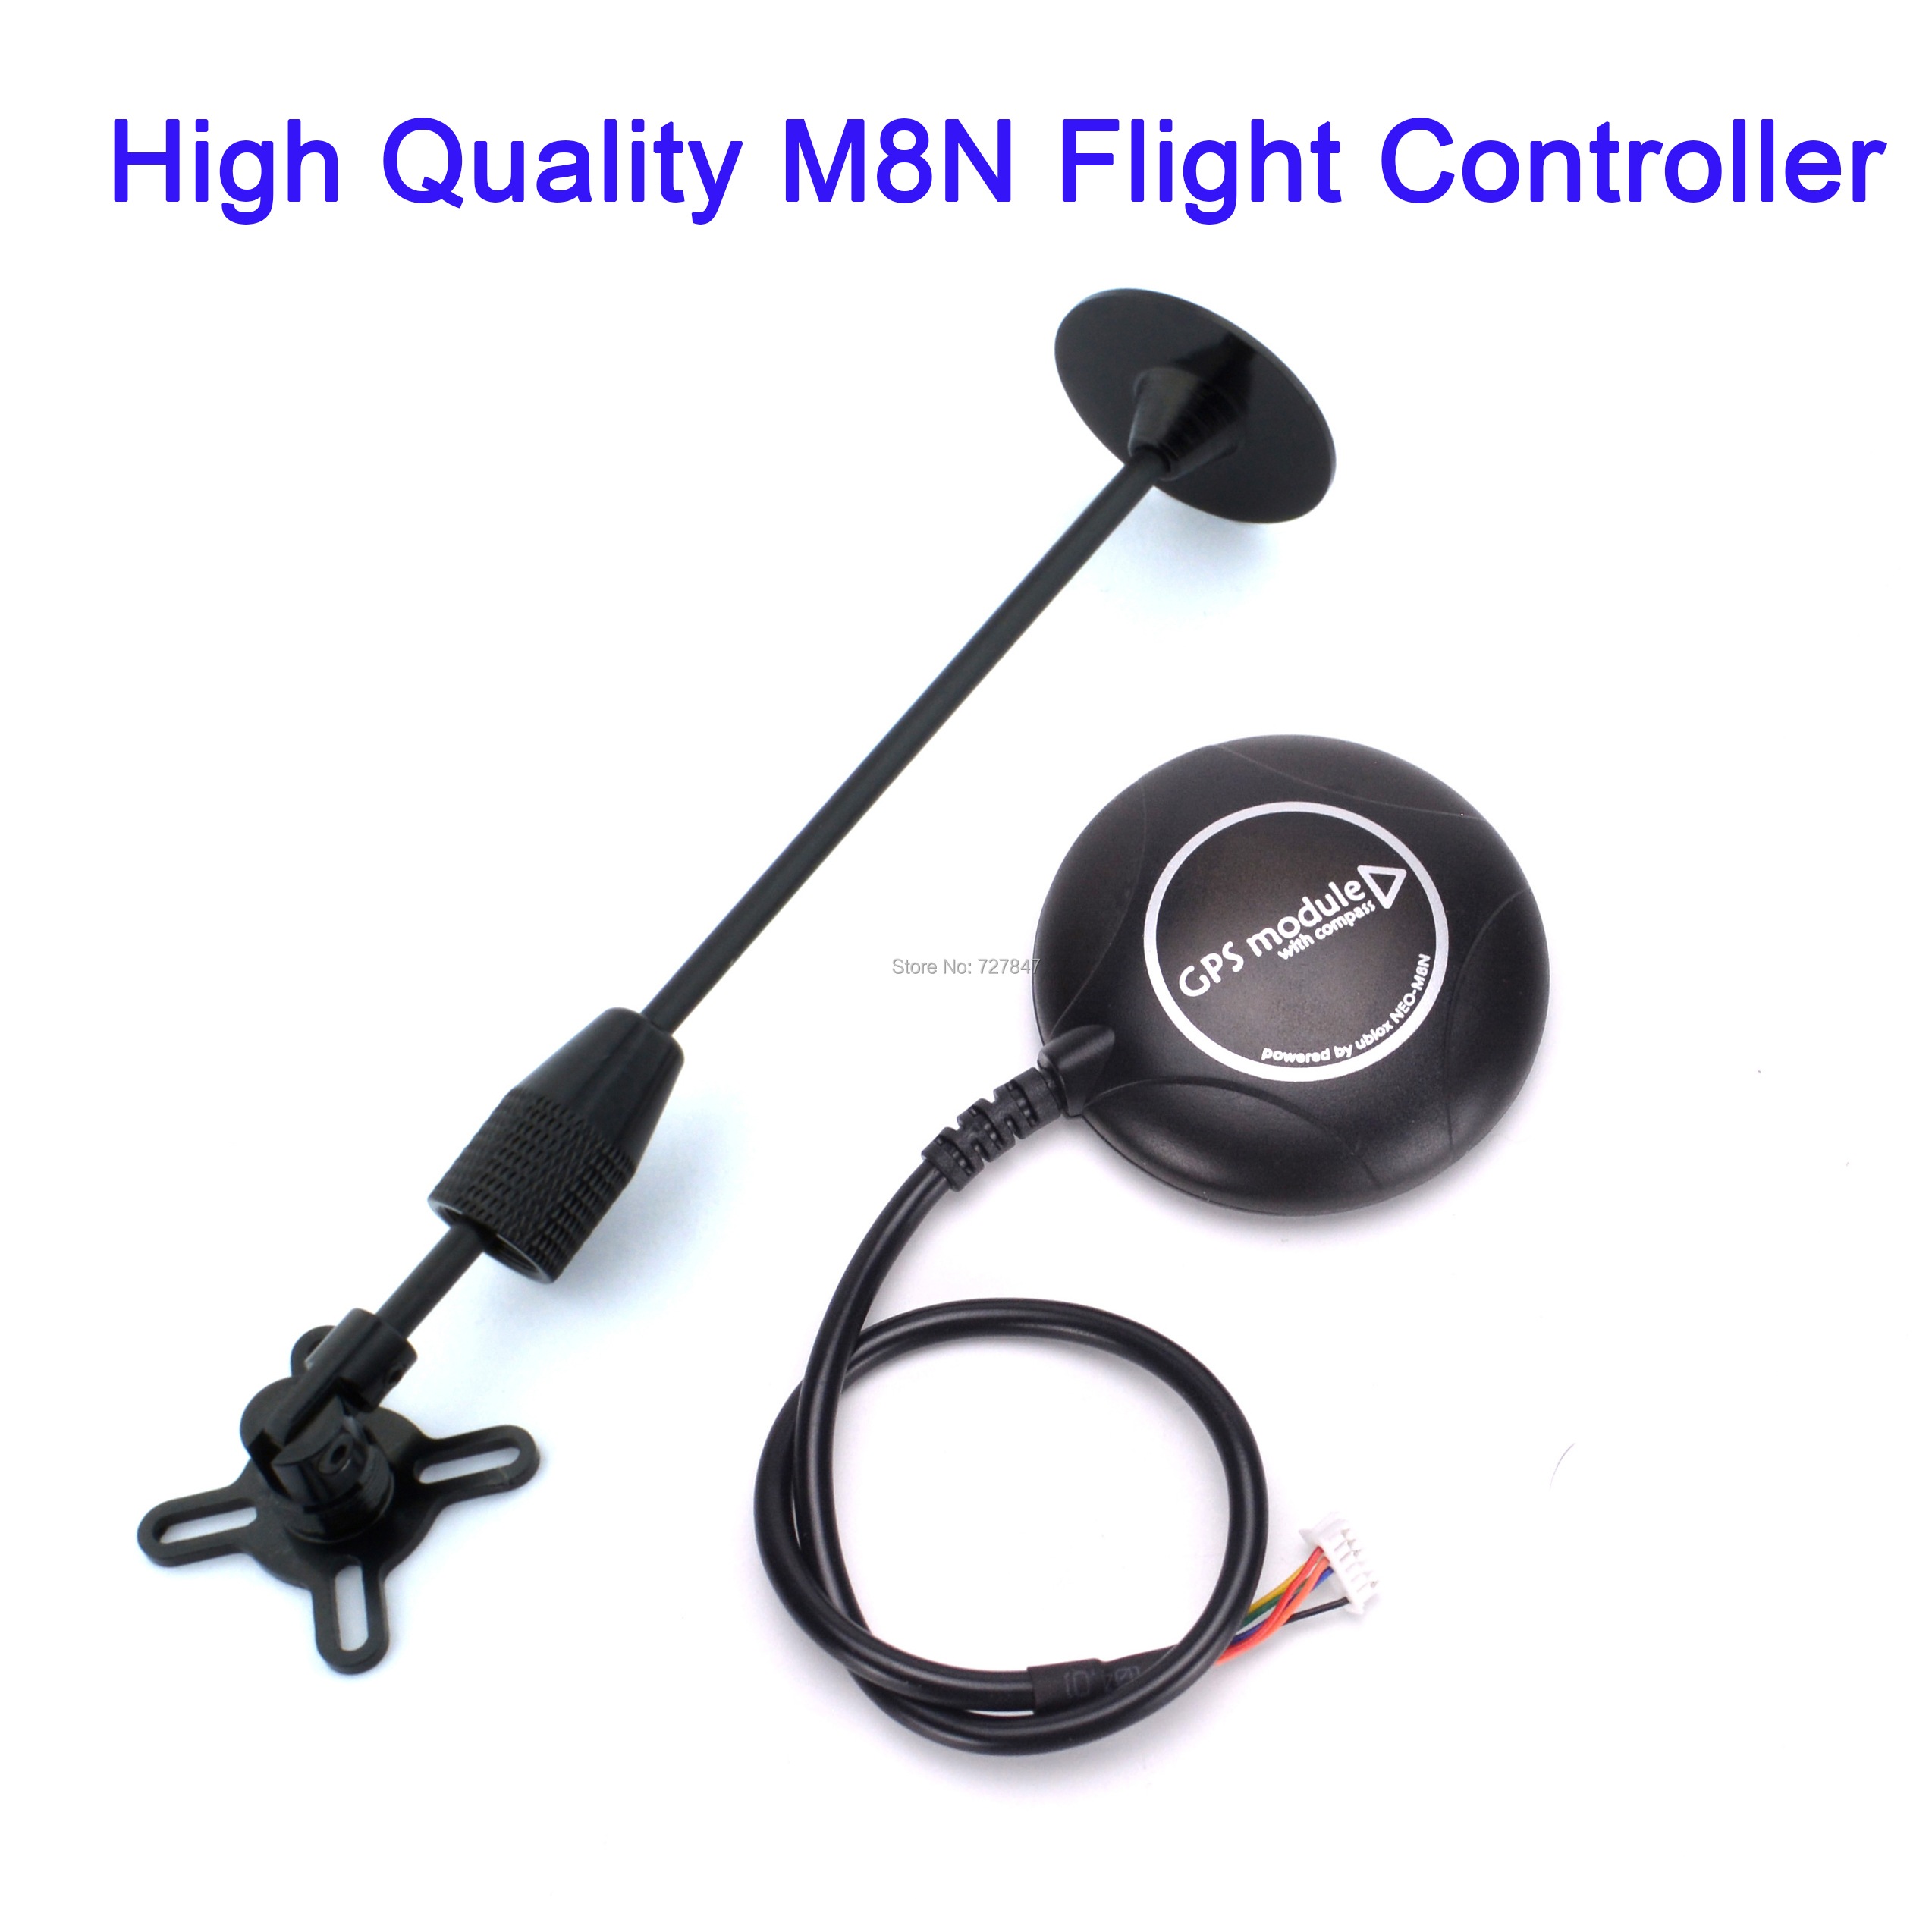 High Quality Latest M8N 8N Flight Controller GPS Module with GPS Holder for PX4 PIX Pixhawk